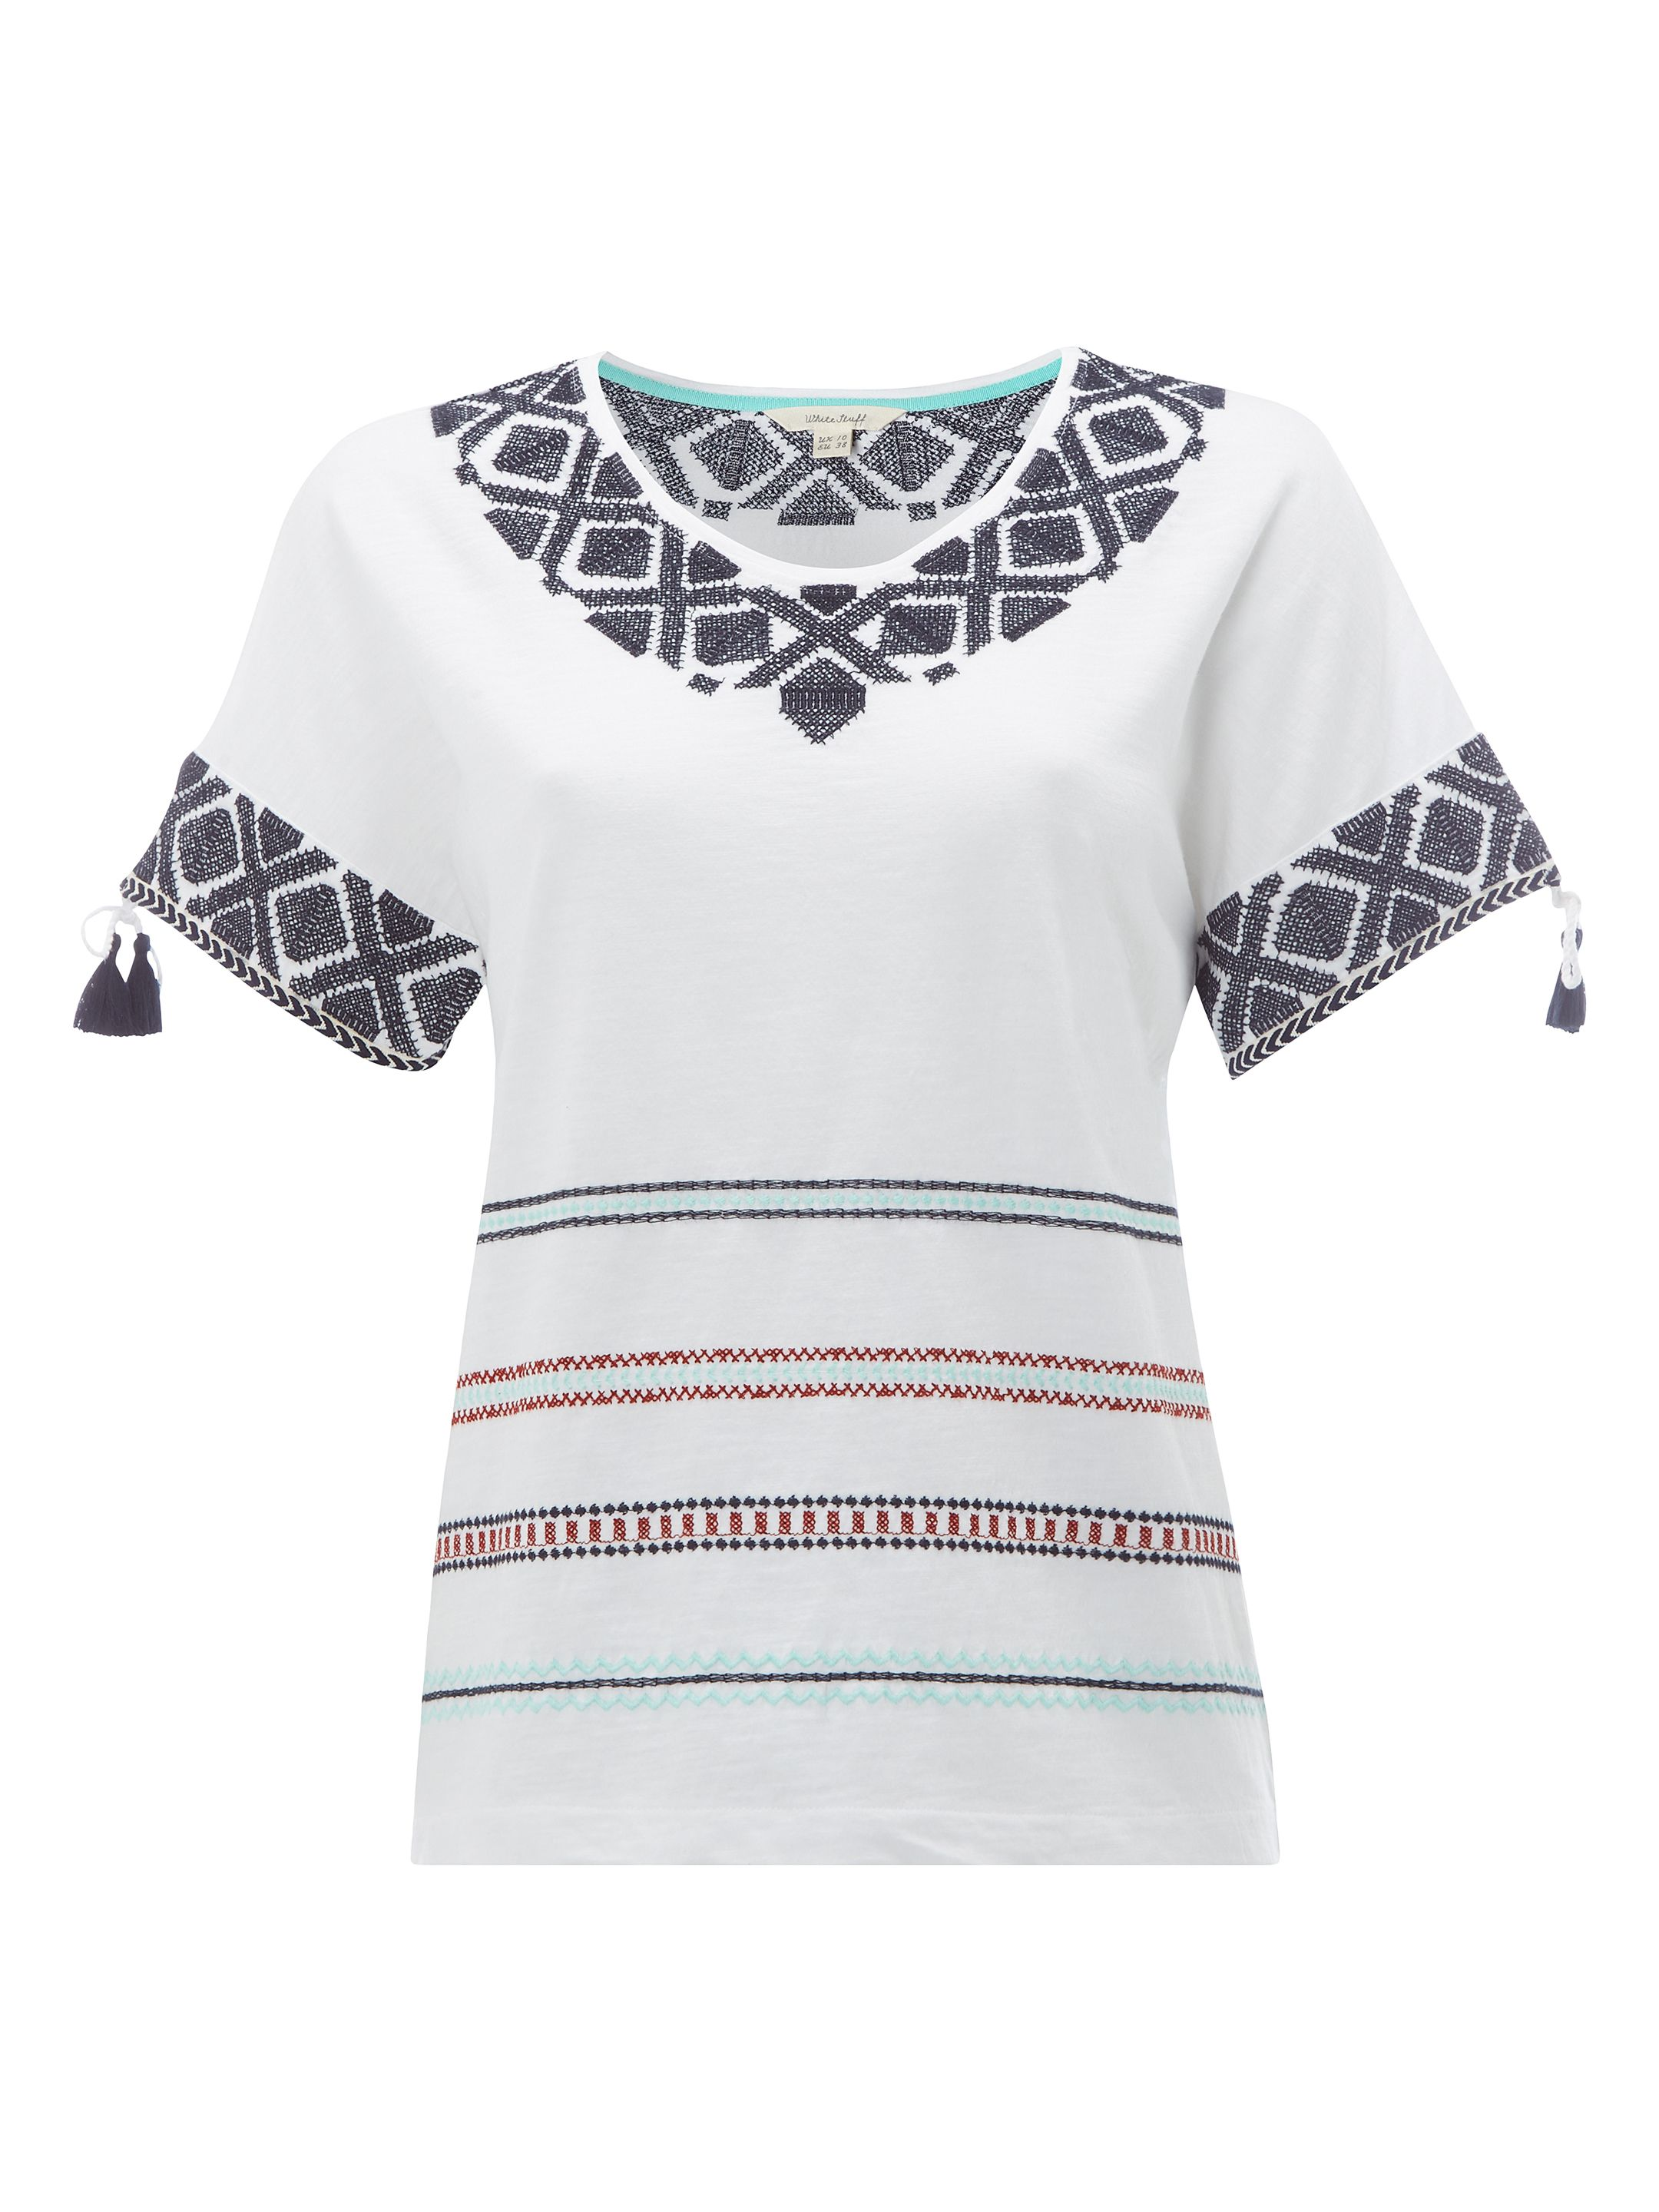 White Stuff Porto Multi Stripe Tee, Multi-Coloured